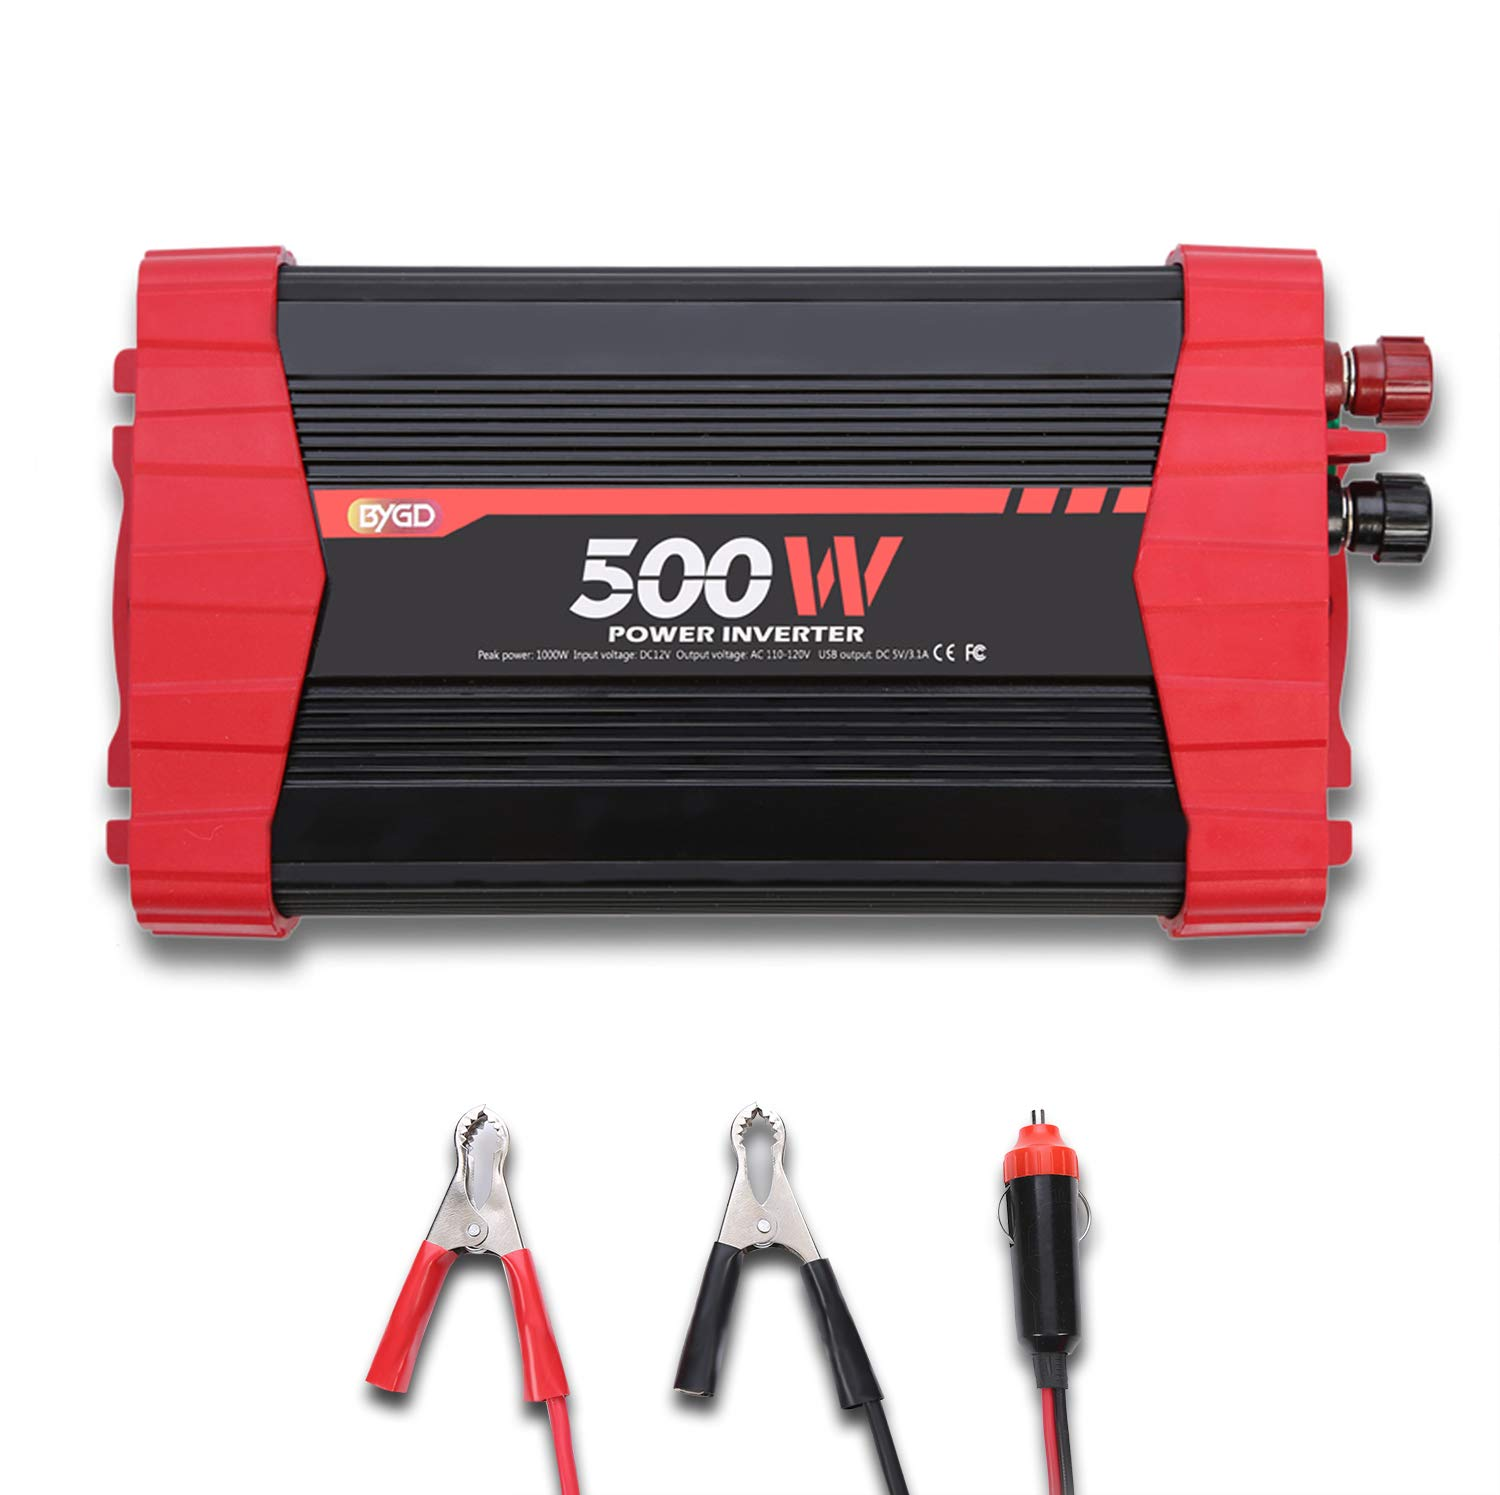 BYGD 500W Car Power Inverter DC 12V to 110V AC Converter 2 Outlets with 4 x 3.1A USB Ports